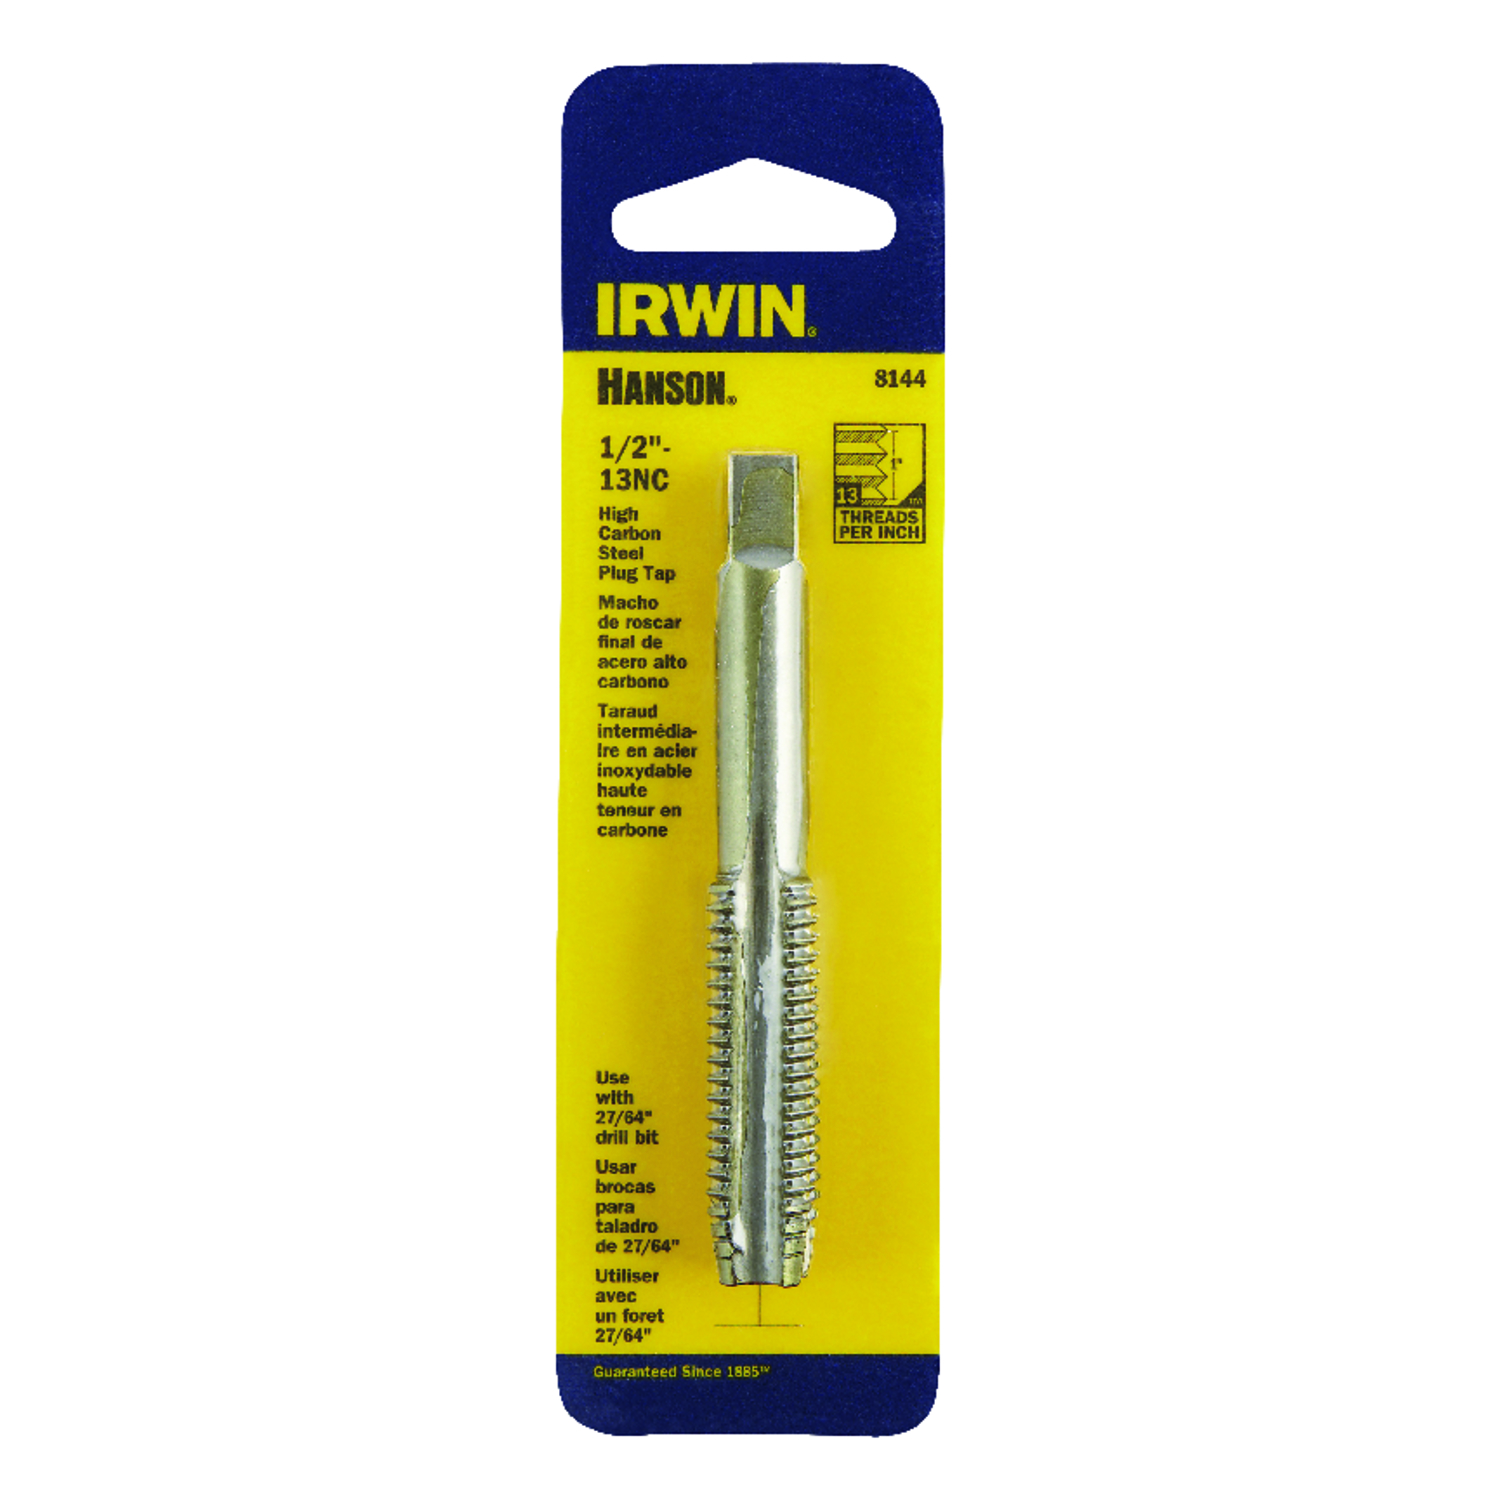 Irwin  Hanson  High Carbon Steel  SAE  Fraction Tap  1/2 in.-13NC  1 pc.